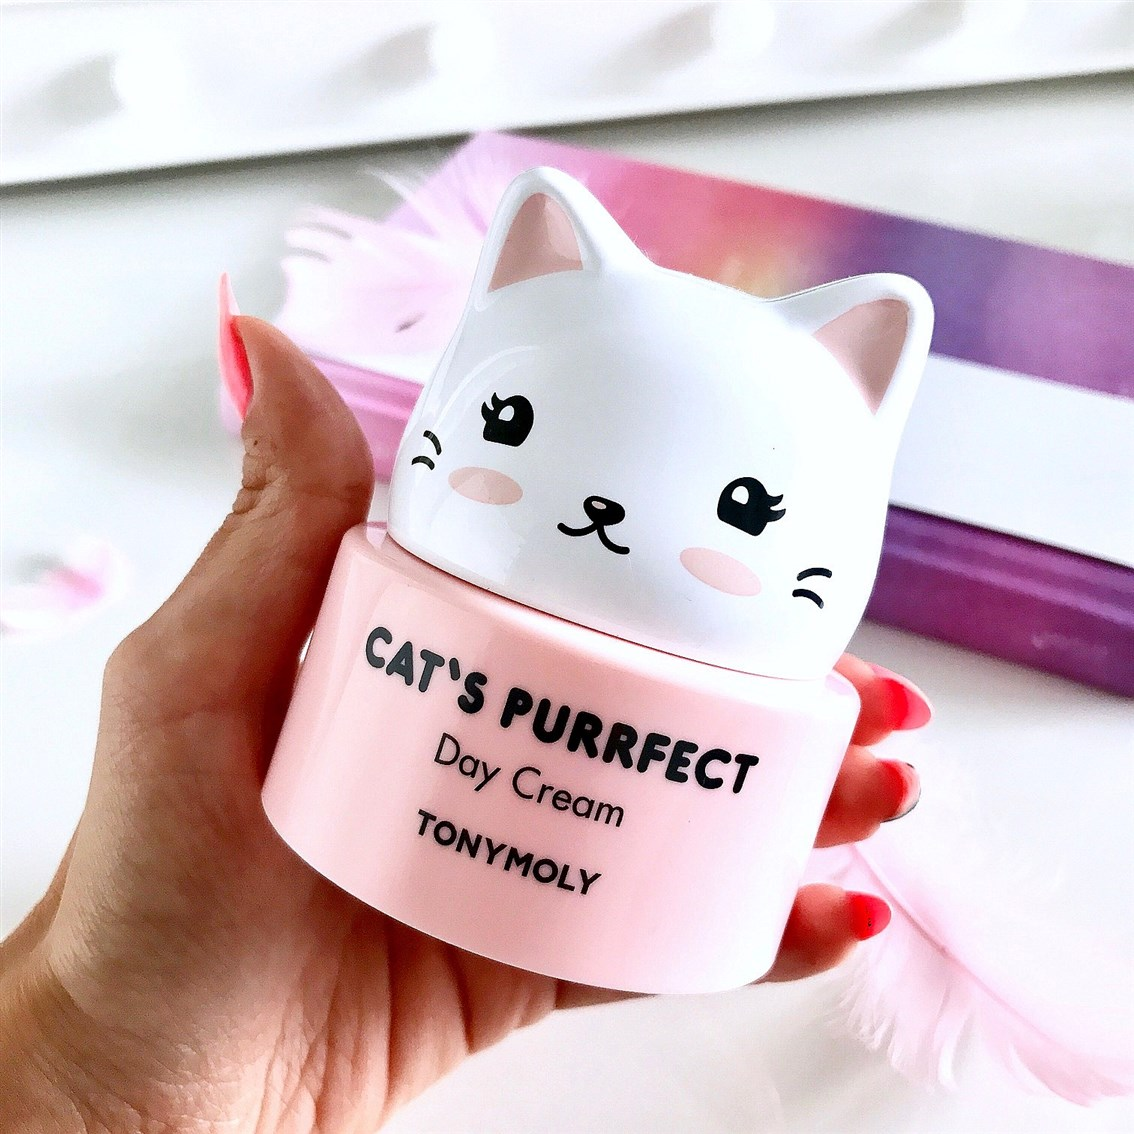 Tonymoly Cat's Purrfect